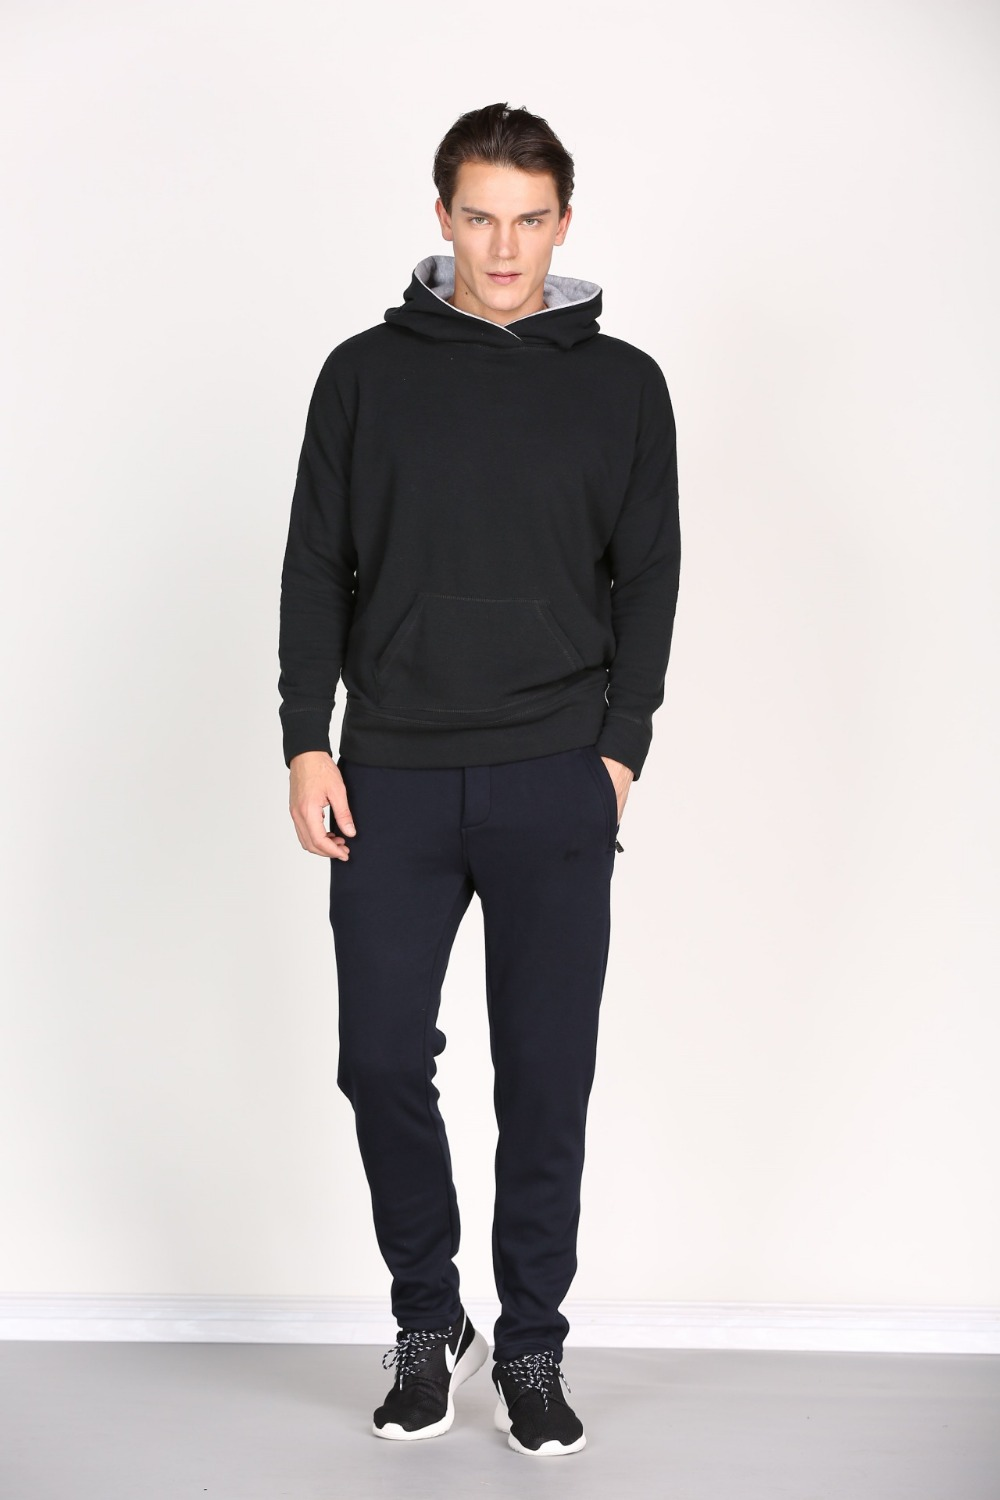 Find pants for tall skinny men at ShopStyle. Shop the latest collection of pants for tall skinny men from the most popular stores - all in one place.